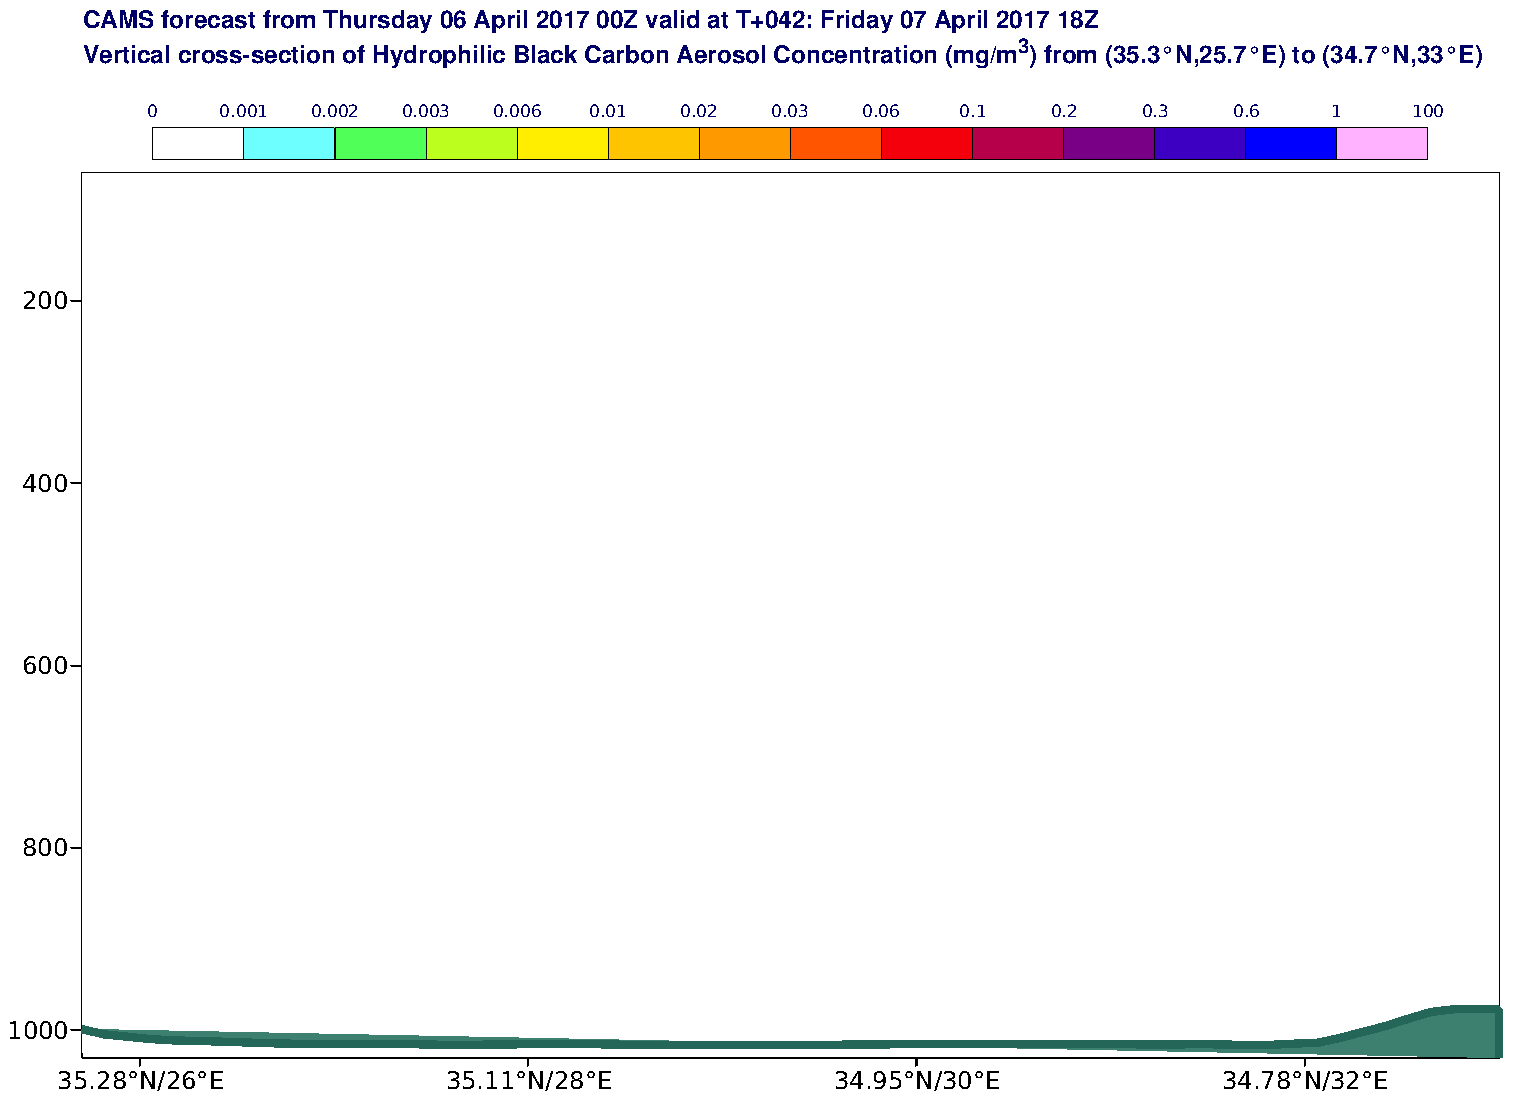 Vertical cross-section of Hydrophilic Black Carbon Aerosol Concentration (mg/m3) valid at T42 - 2017-04-07 18:00